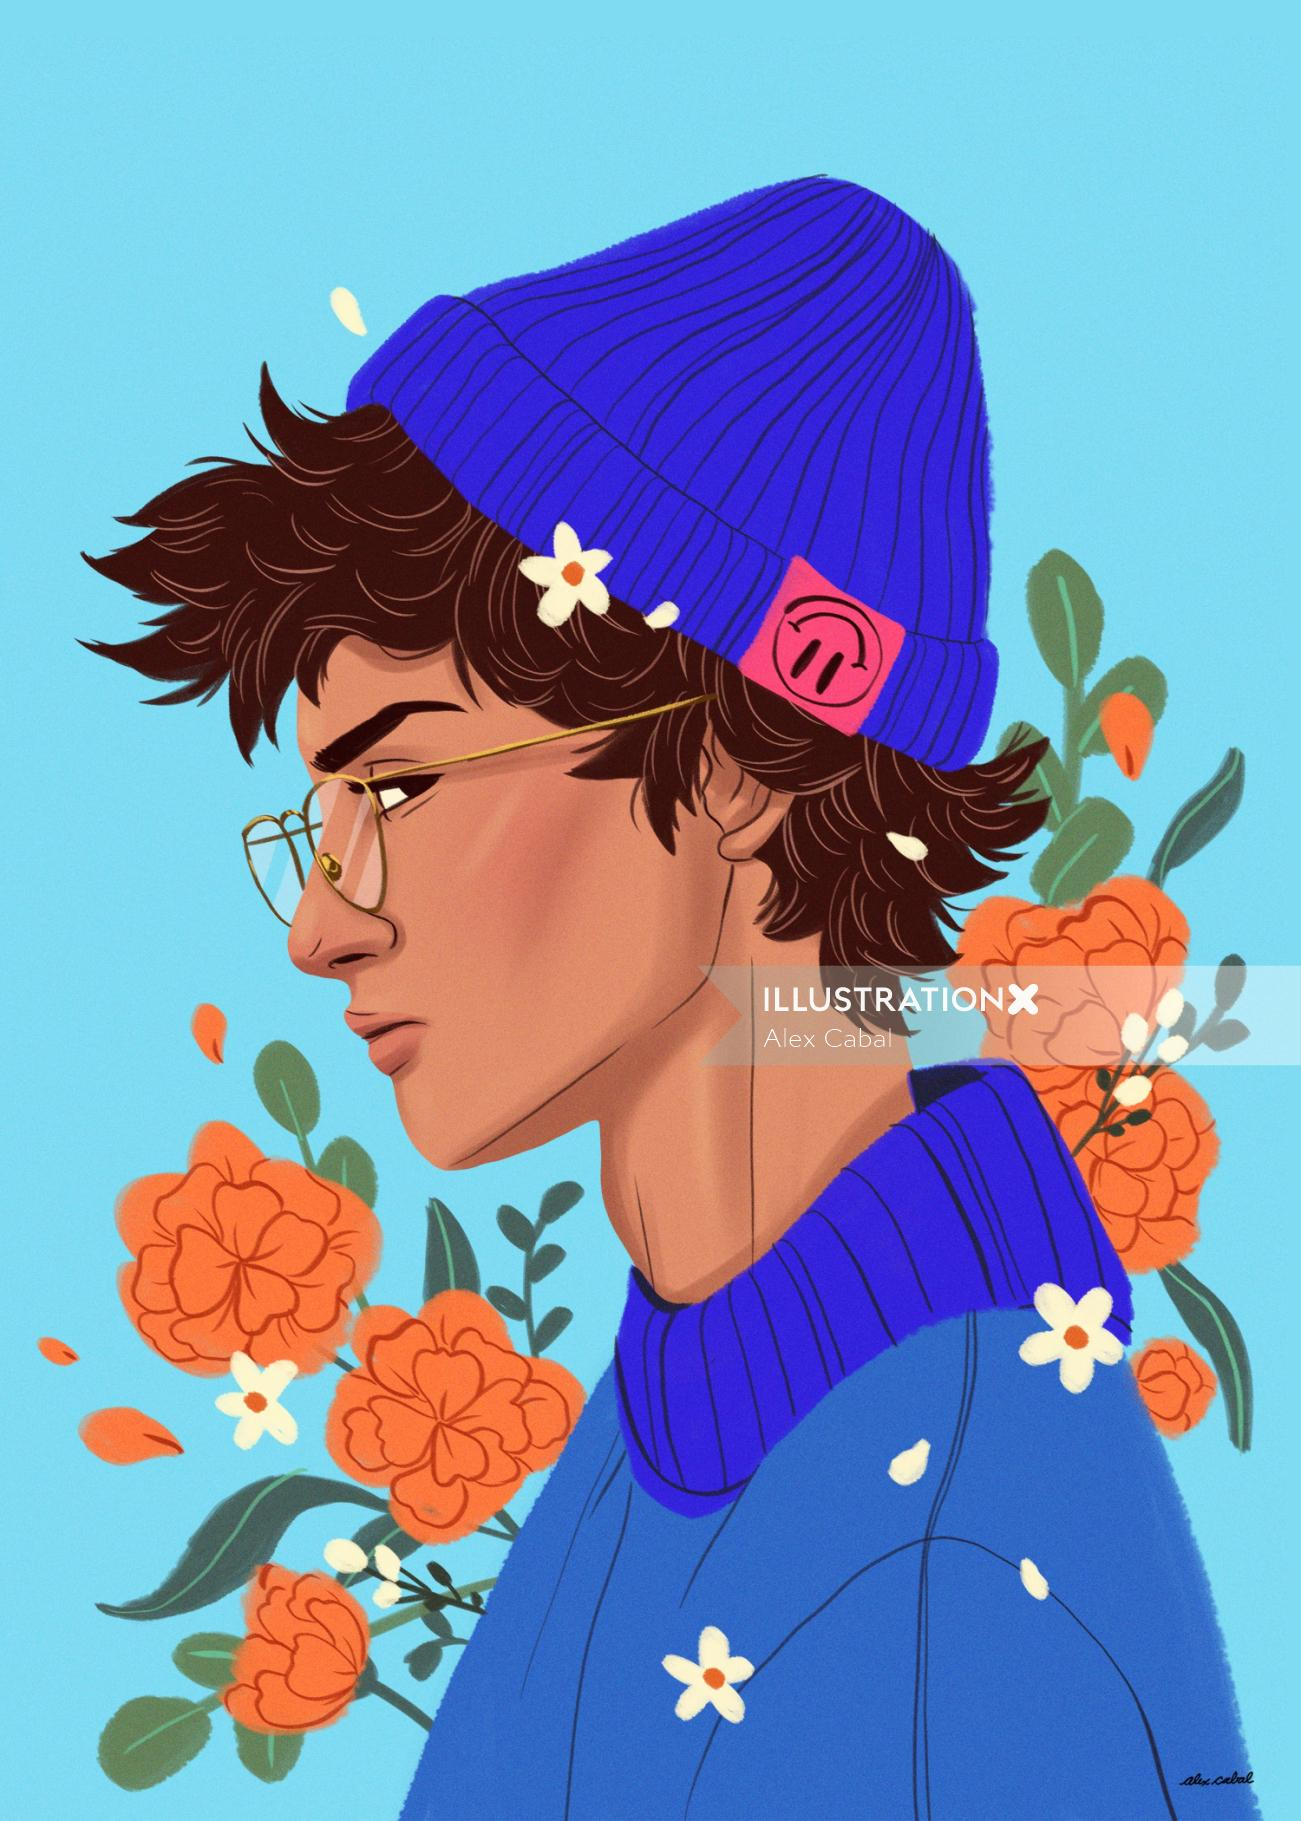 Digital illustration of girl with flowers